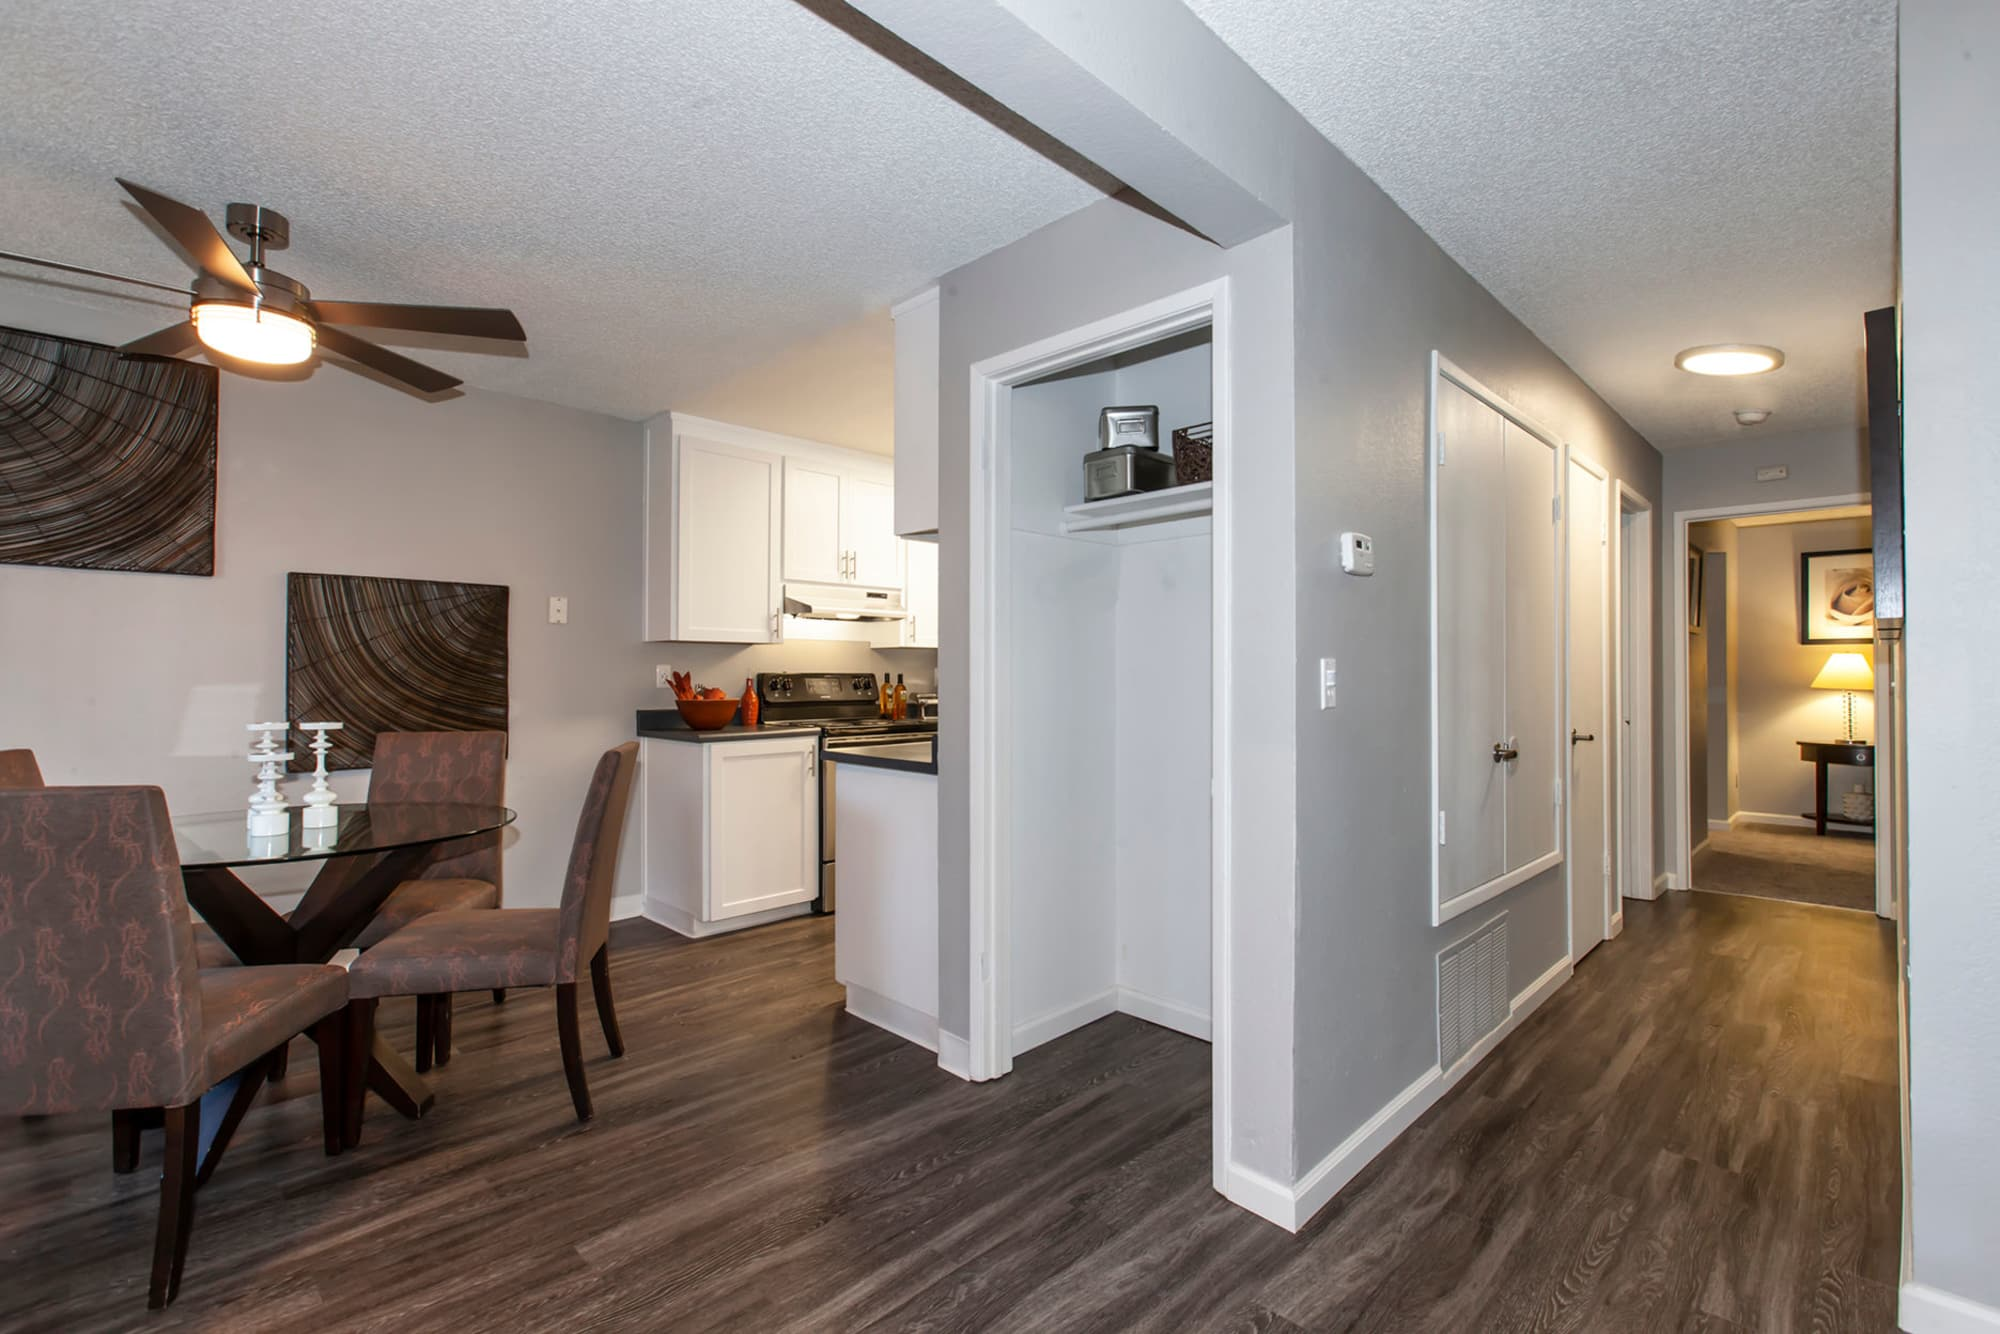 Spacious open floor plan at Avery Park Apartments in Fairfield, California